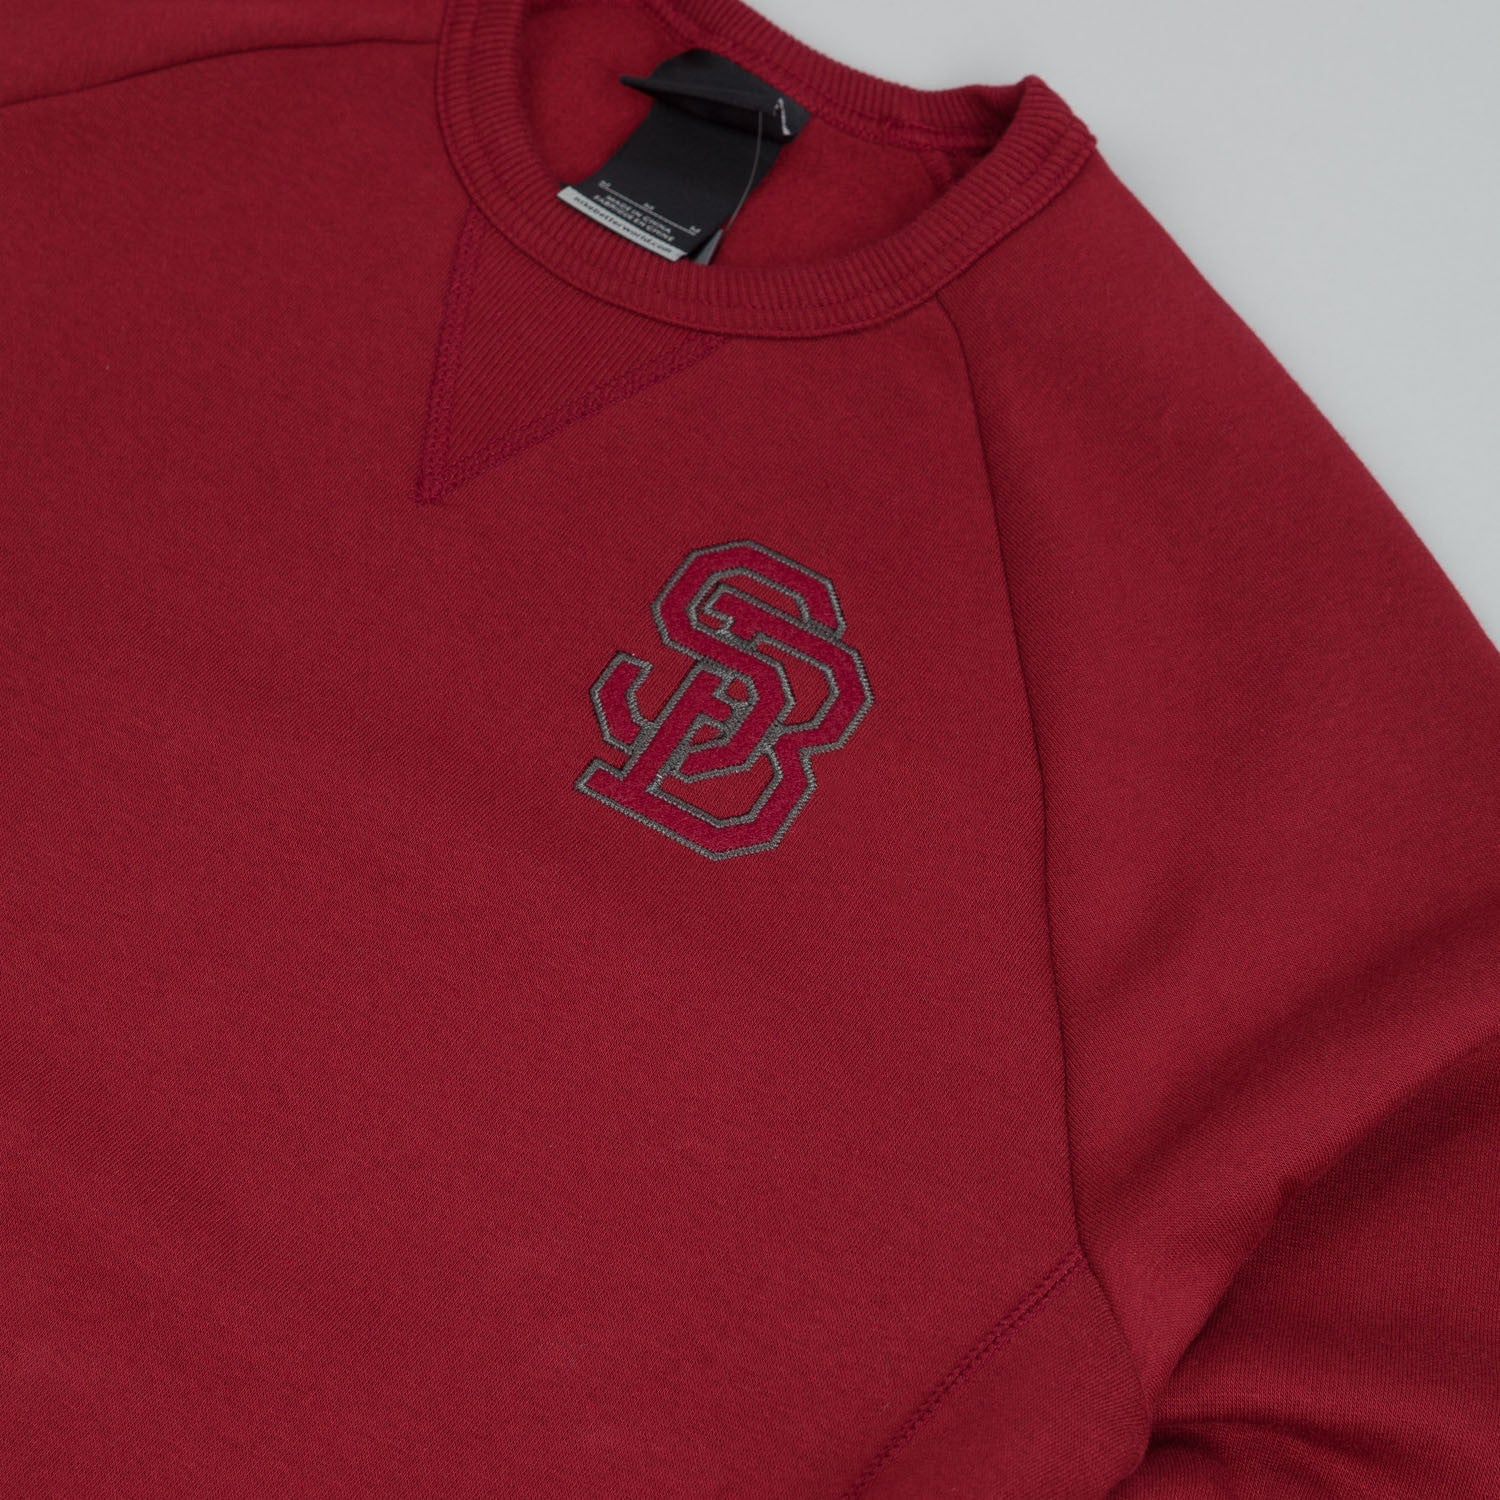 Nike SB Northrup Crew Neck Fleece Sweatshirt Team Red / Team Red